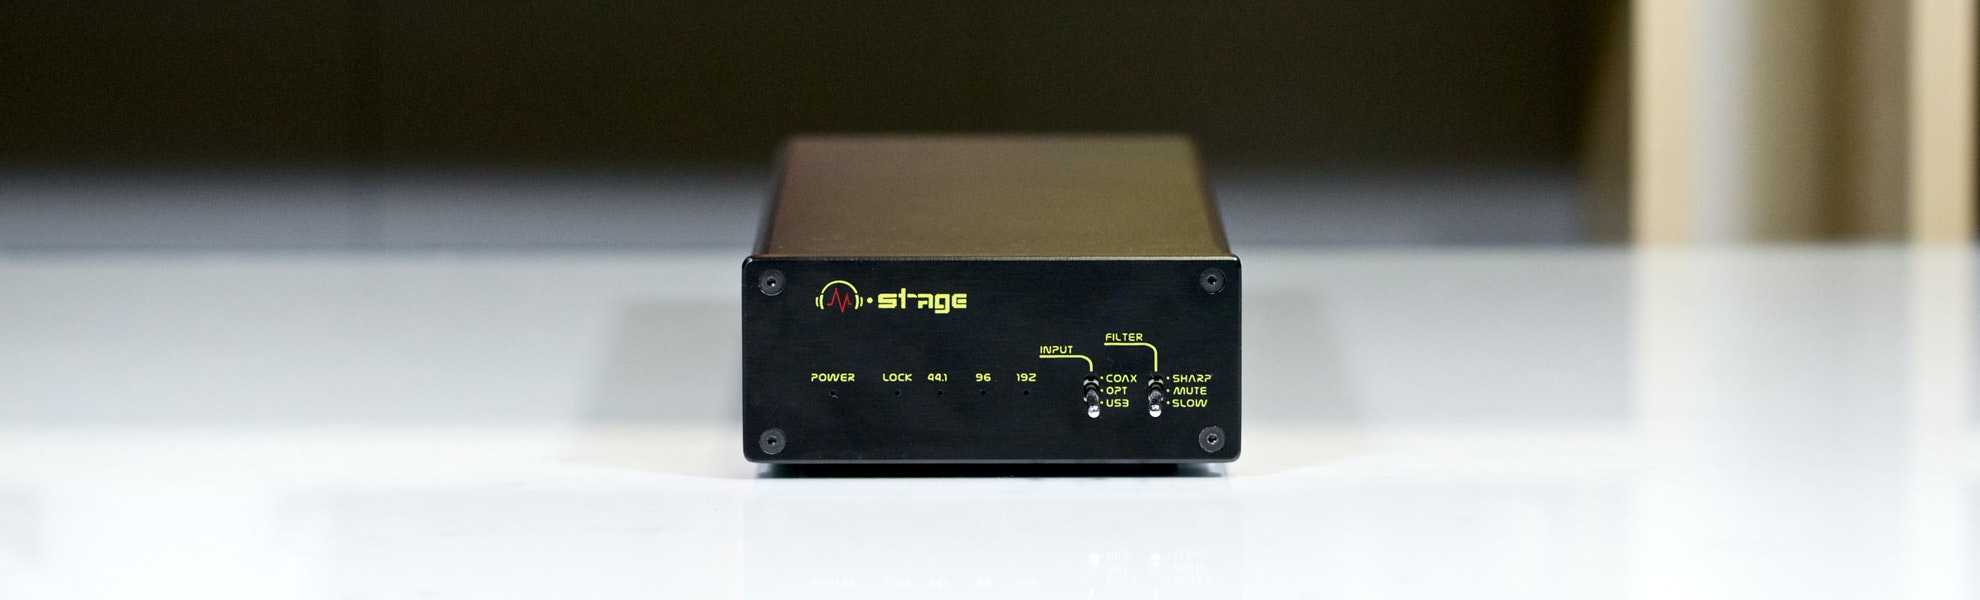 Matrix M-Stage DAC Audio Source